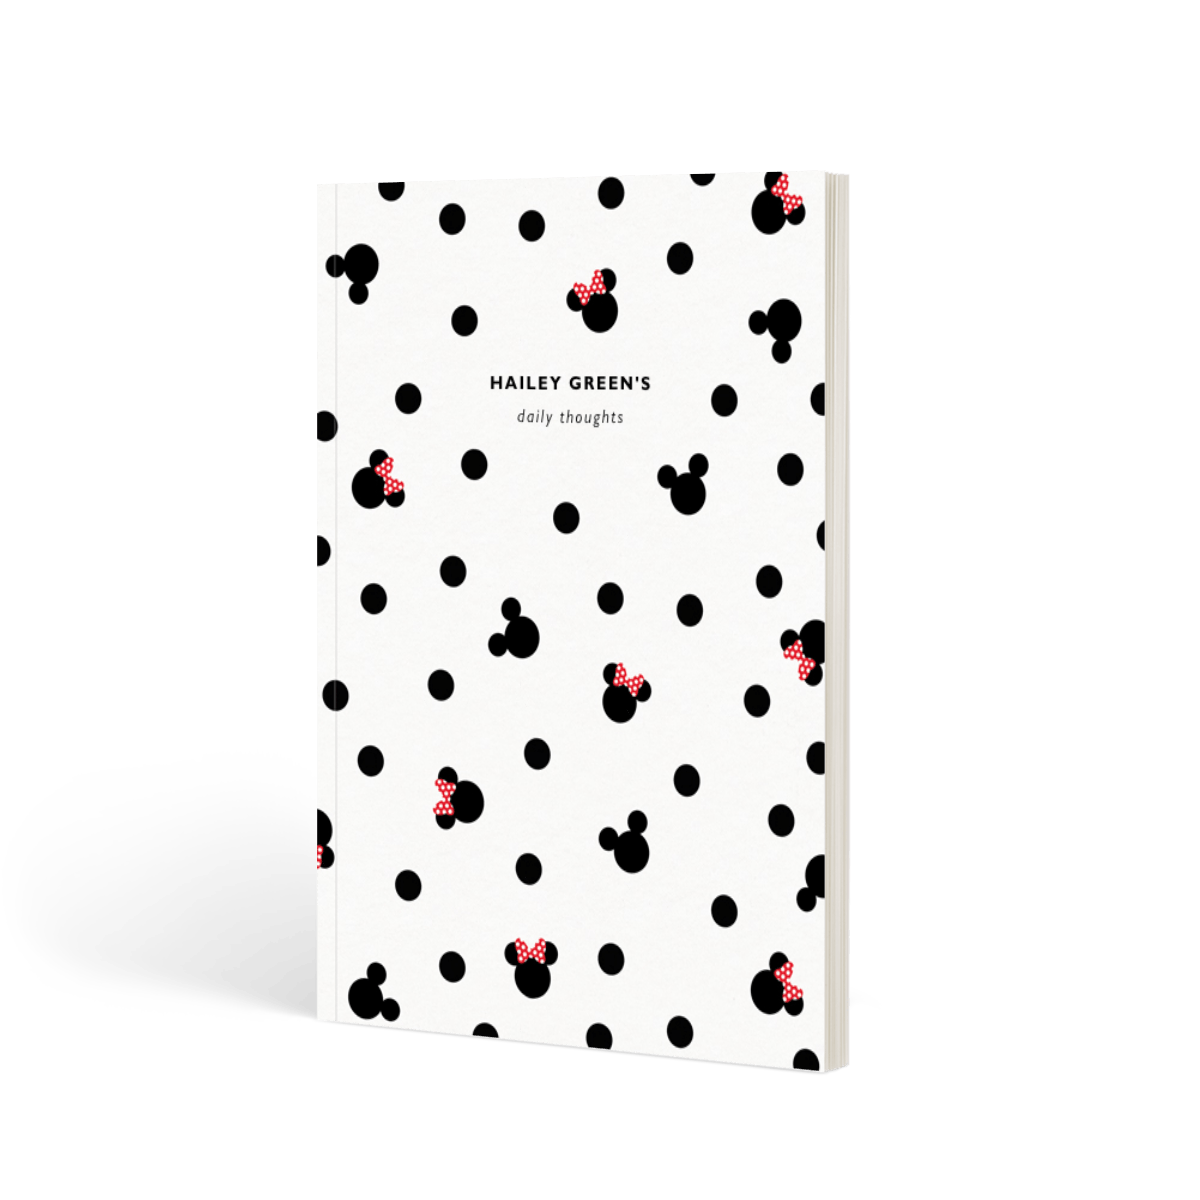 Https%3a%2f%2fwww.papier.com%2fproduct image%2f55821%2f6%2fmickey minnie mouse 13406 front 1542299841.png?ixlib=rb 1.1